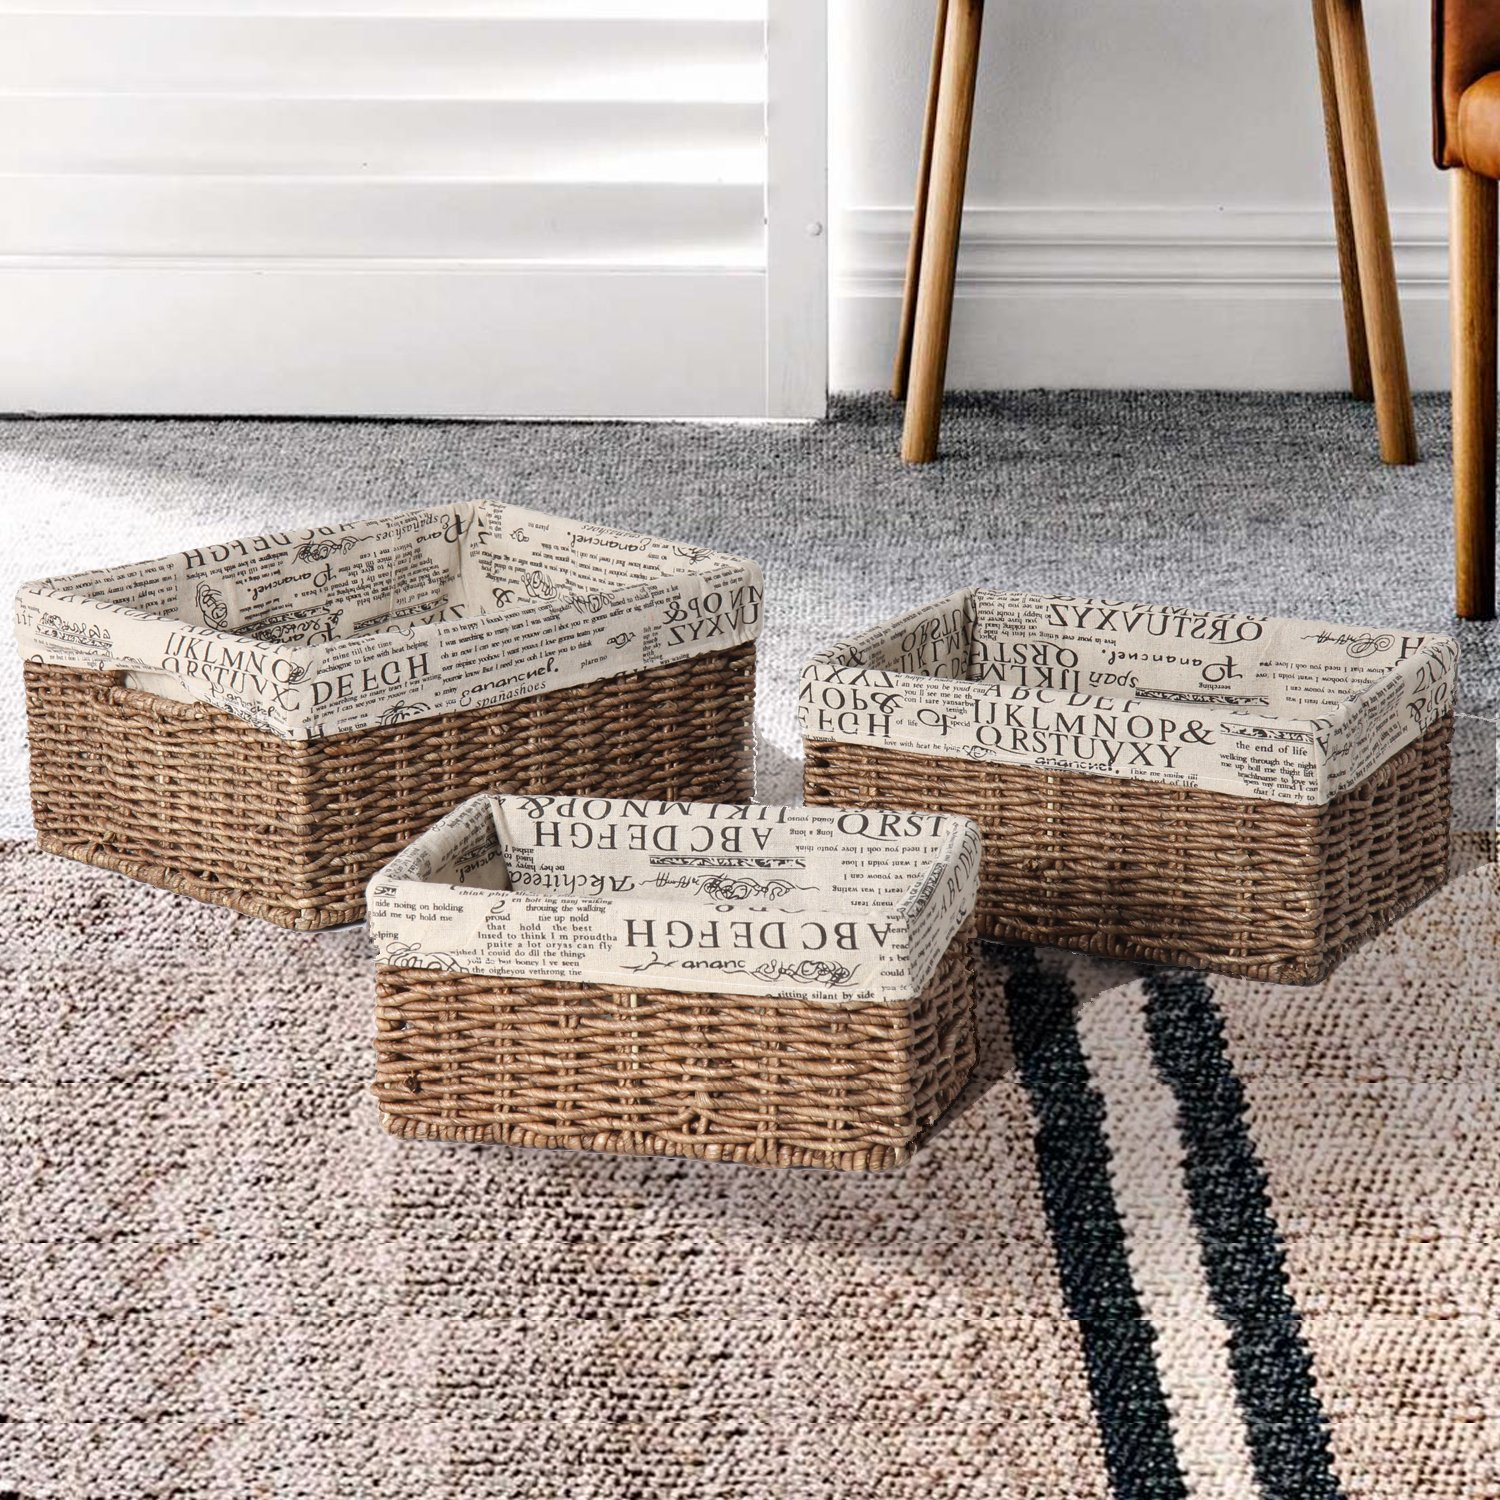 Adeco Multi-Purpose Woven Baskets with Newspaper Print Lining Home Decor, Set of 3 by Adeco